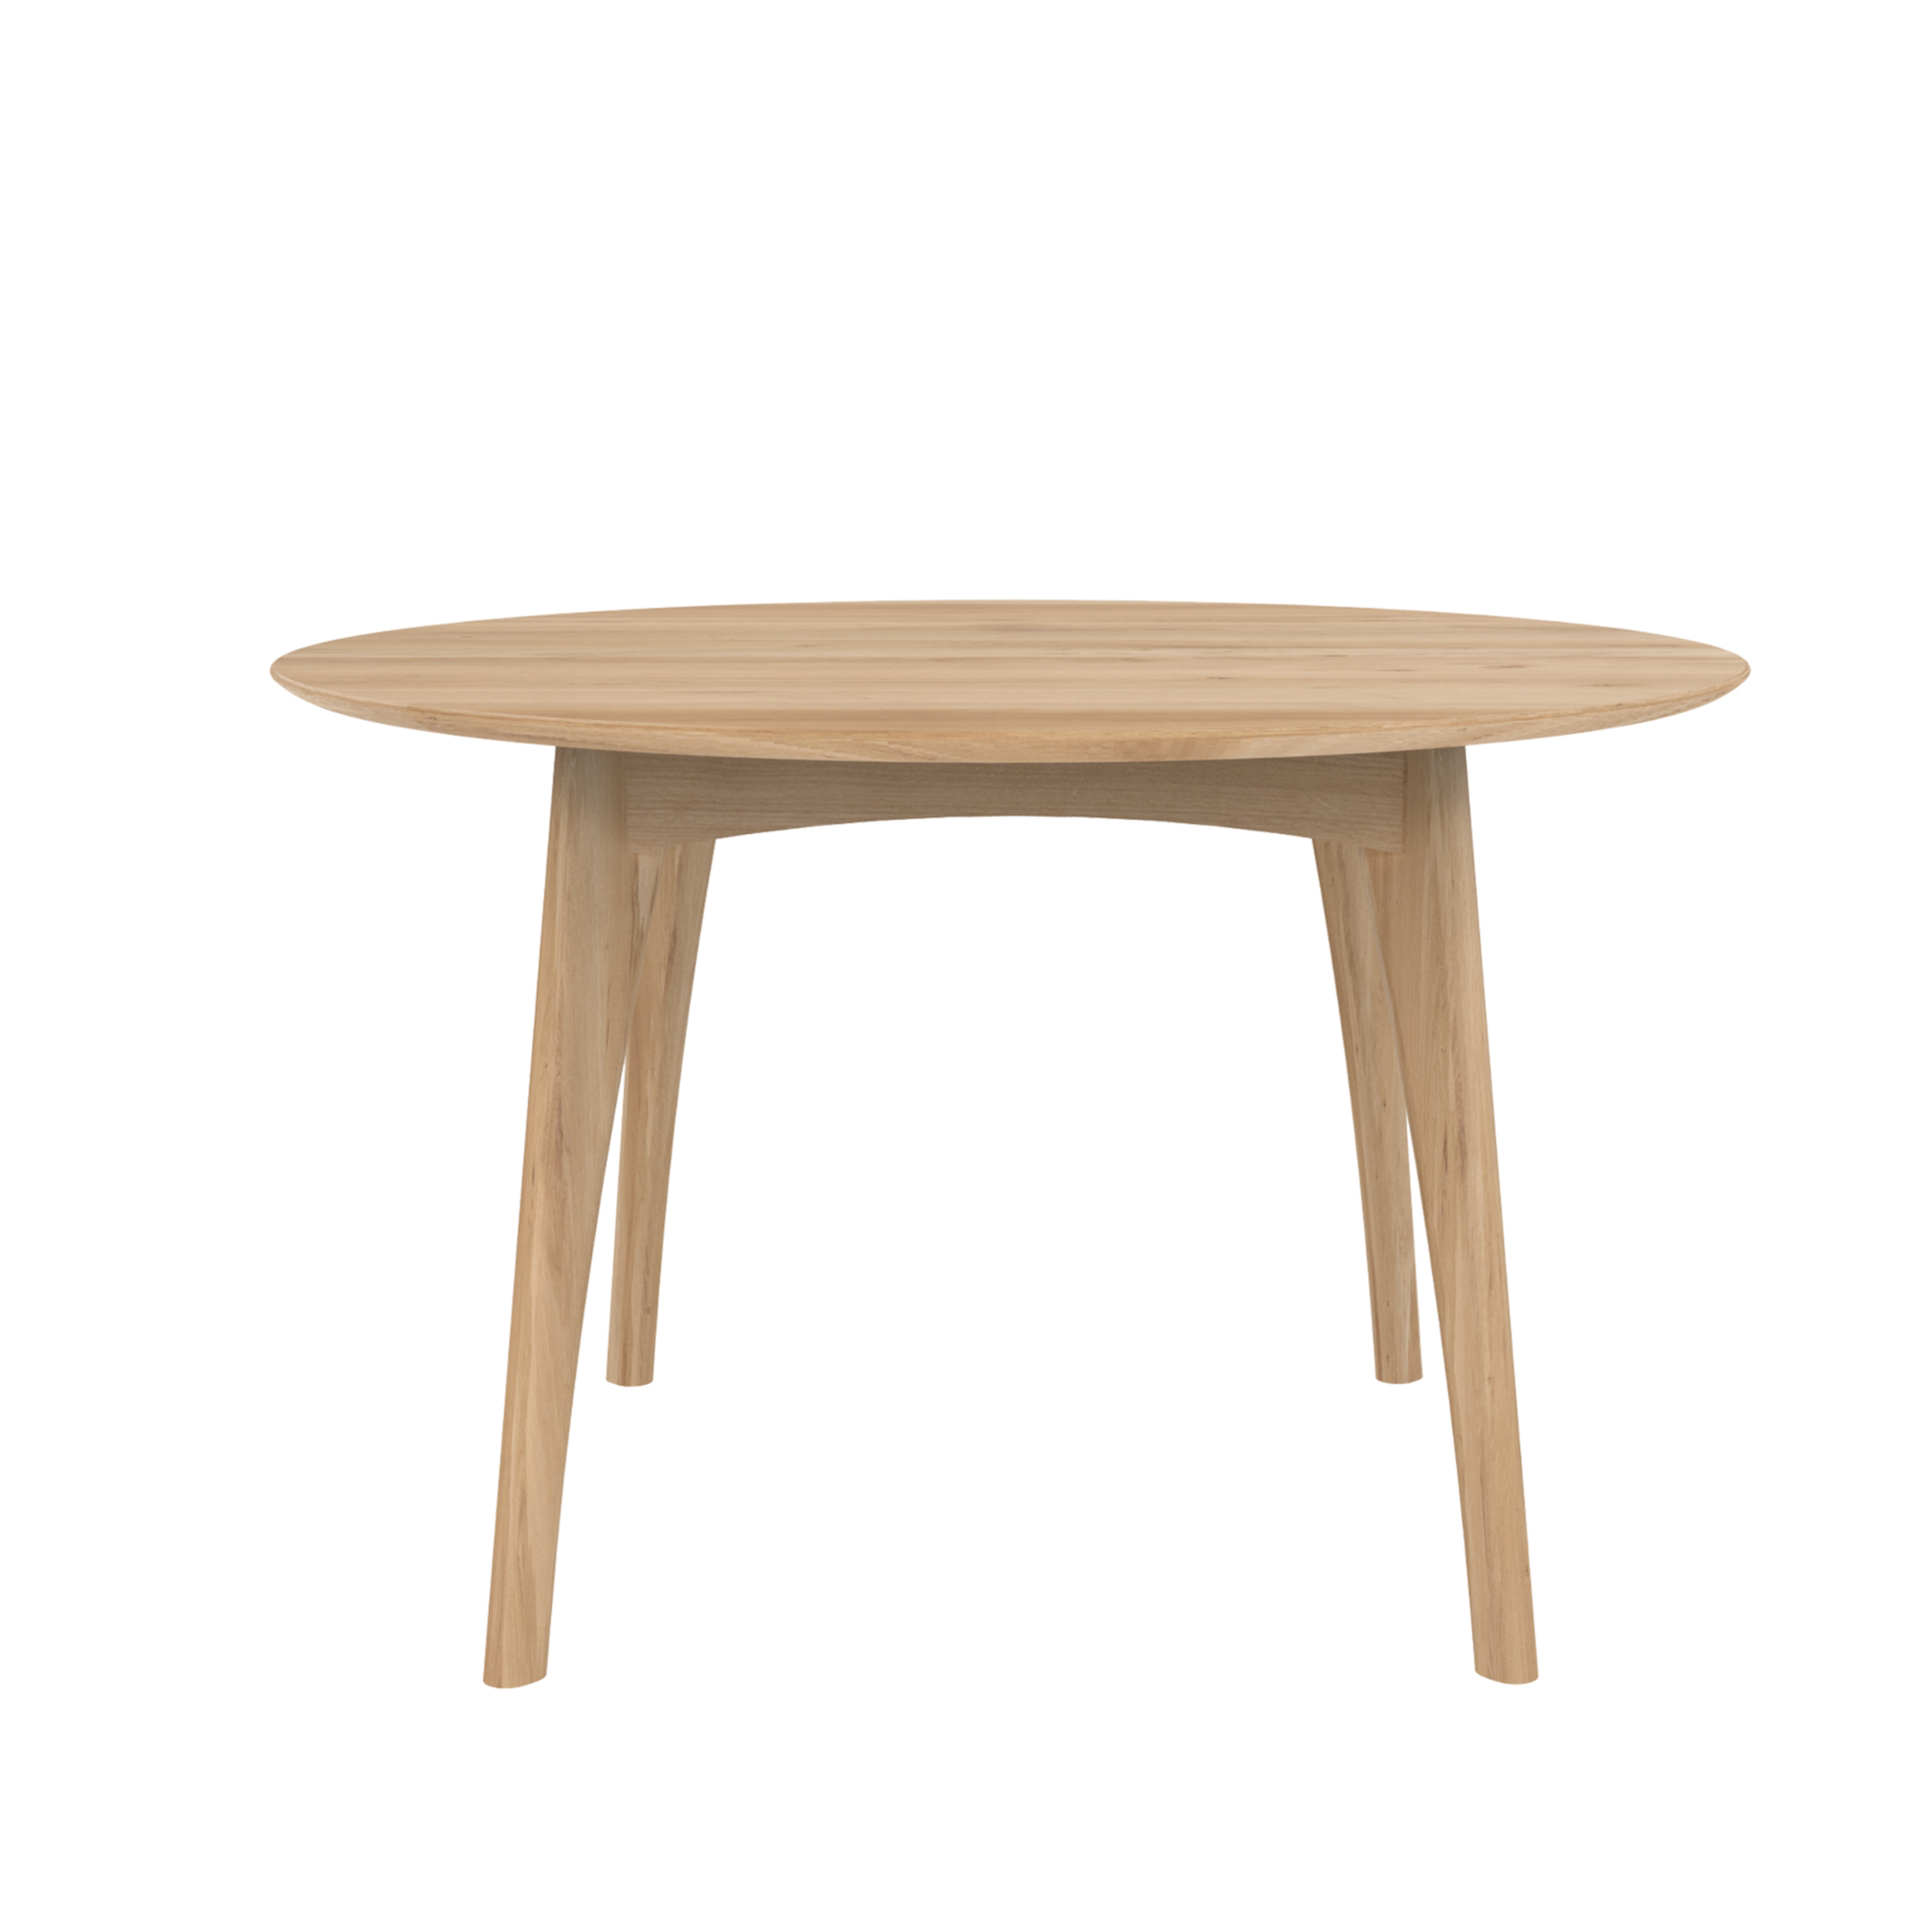 53031 Osso round table - Oak.jpg.png